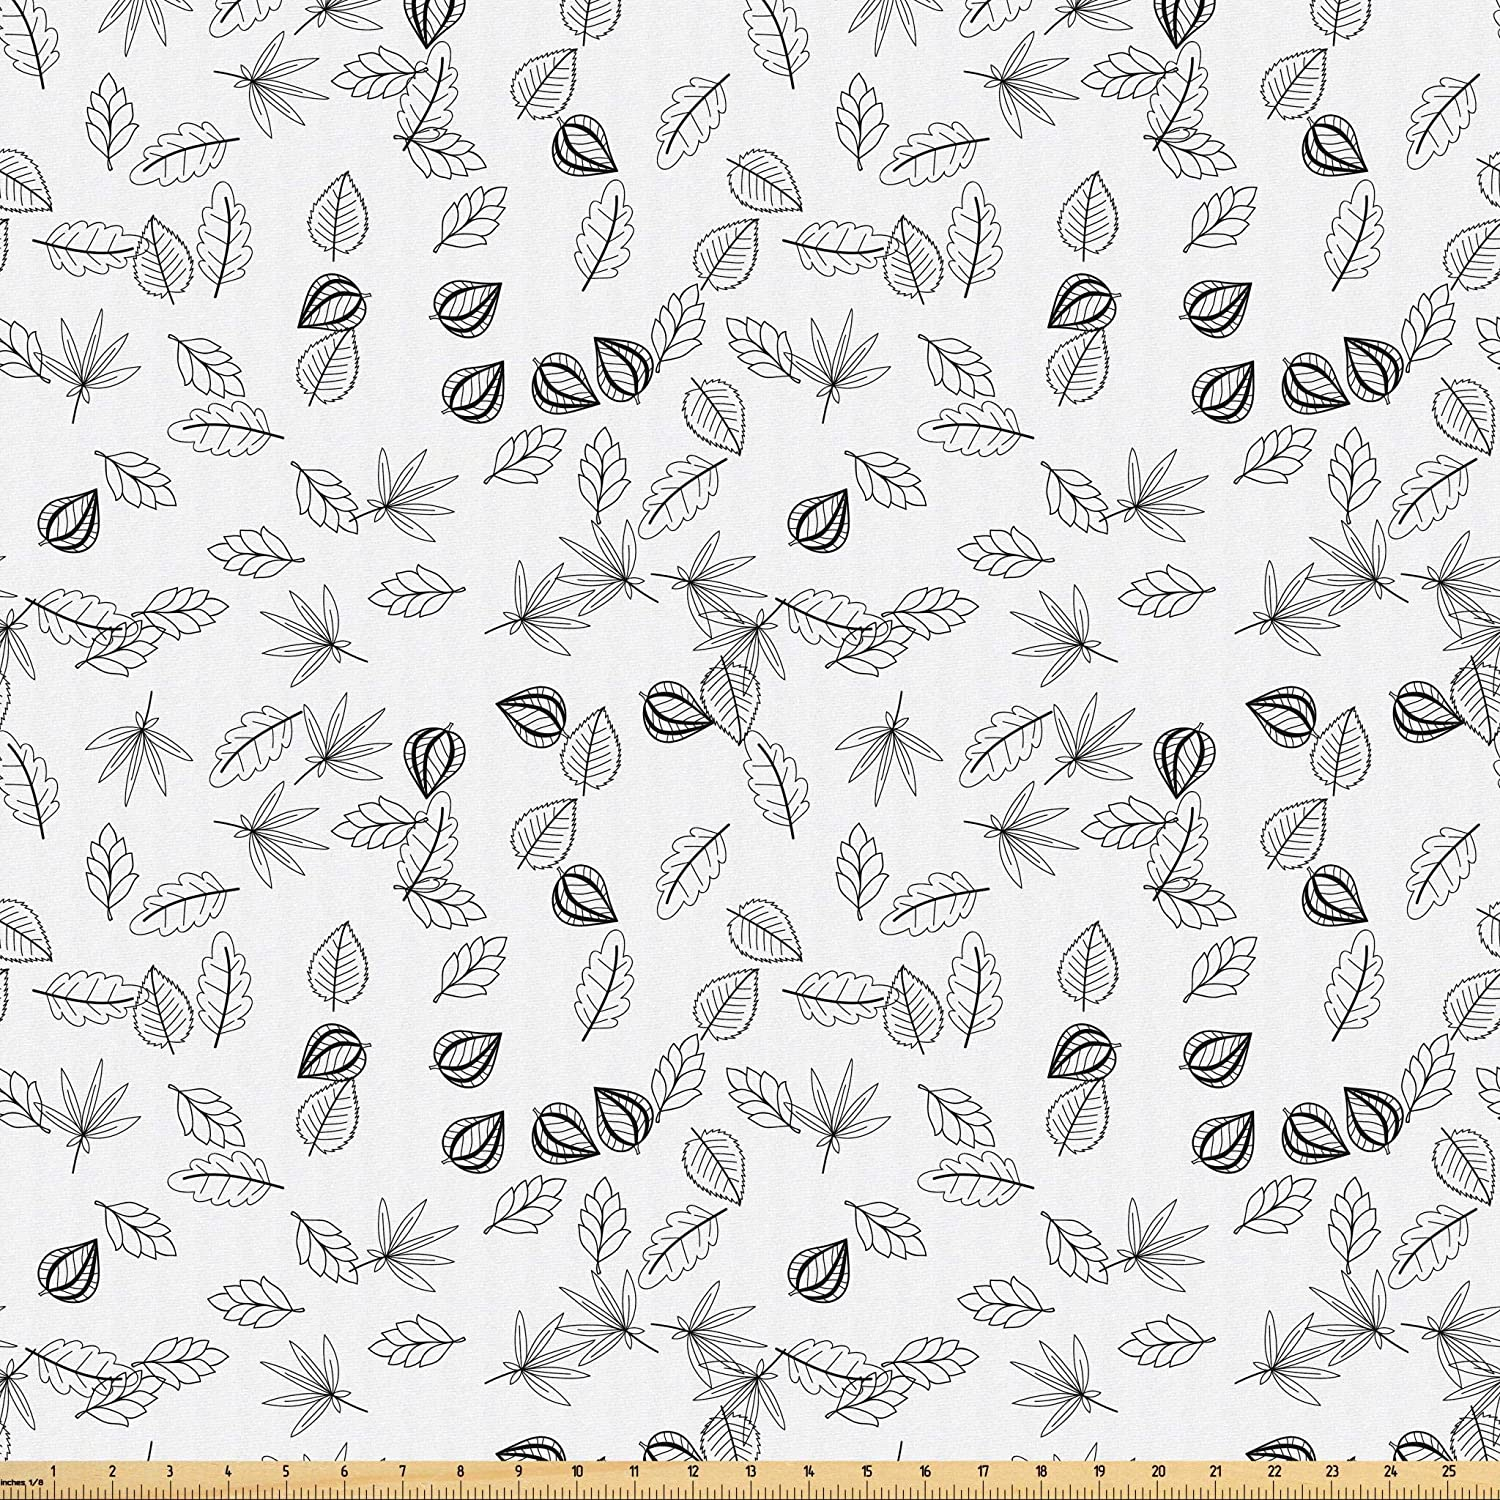 Lunarable Leaves Fabric by The Yard, Monochrome Foliage Pattern in Doodle Style an Assortment of Different Designs, Microfiber Fabric for Arts and Crafts Textiles & Decor, 5 Yards, Black and White